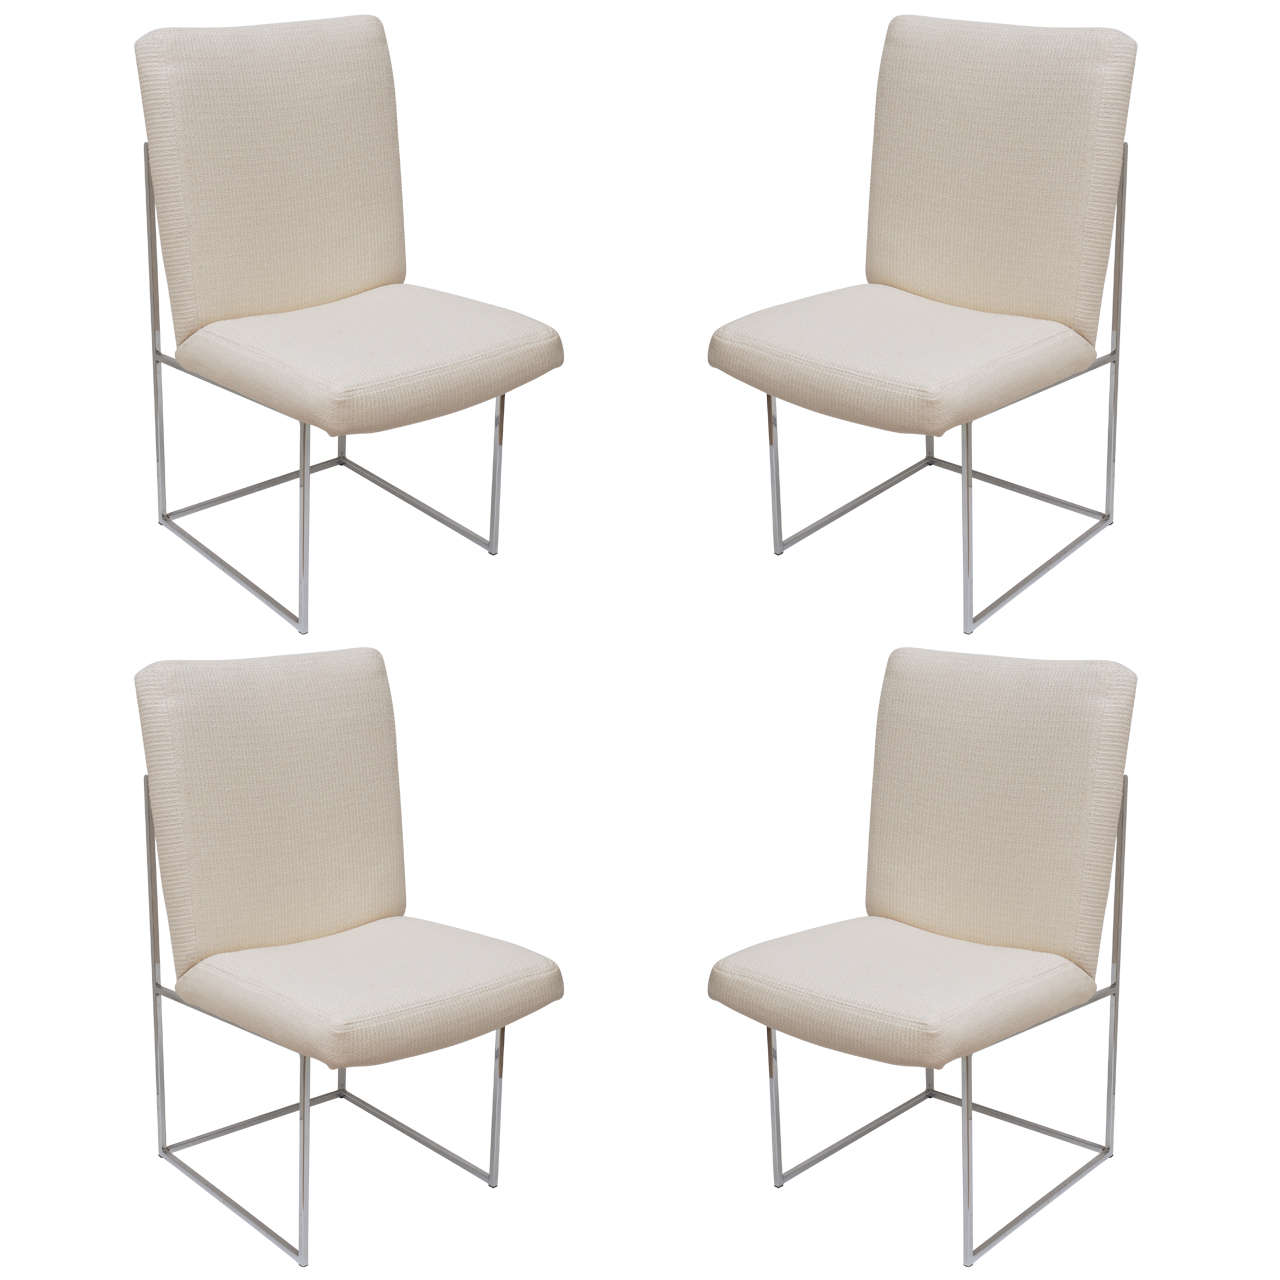 Set Of 4 Milo Baughman Chrome Architectural Box Frame Dining Chairs /SALE